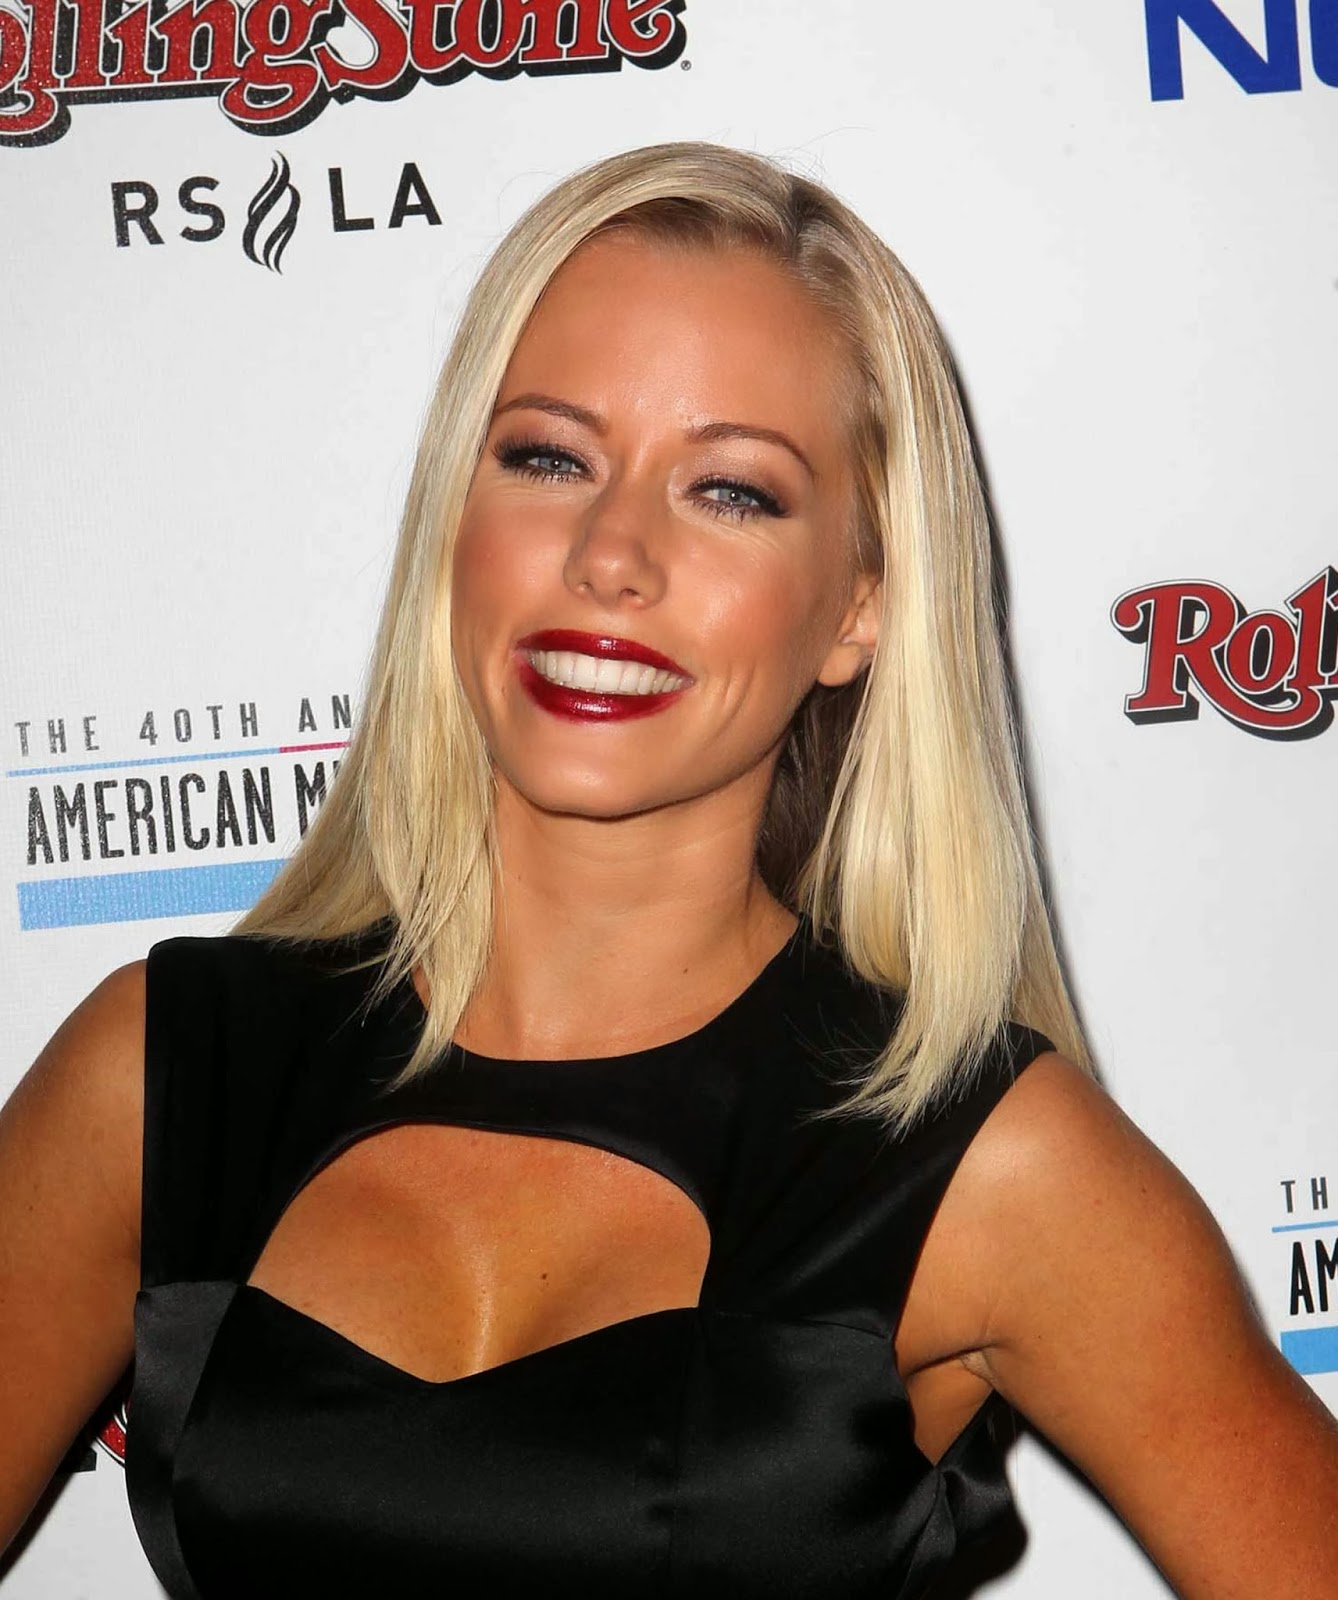 Kendra Wilkinson Who Is?